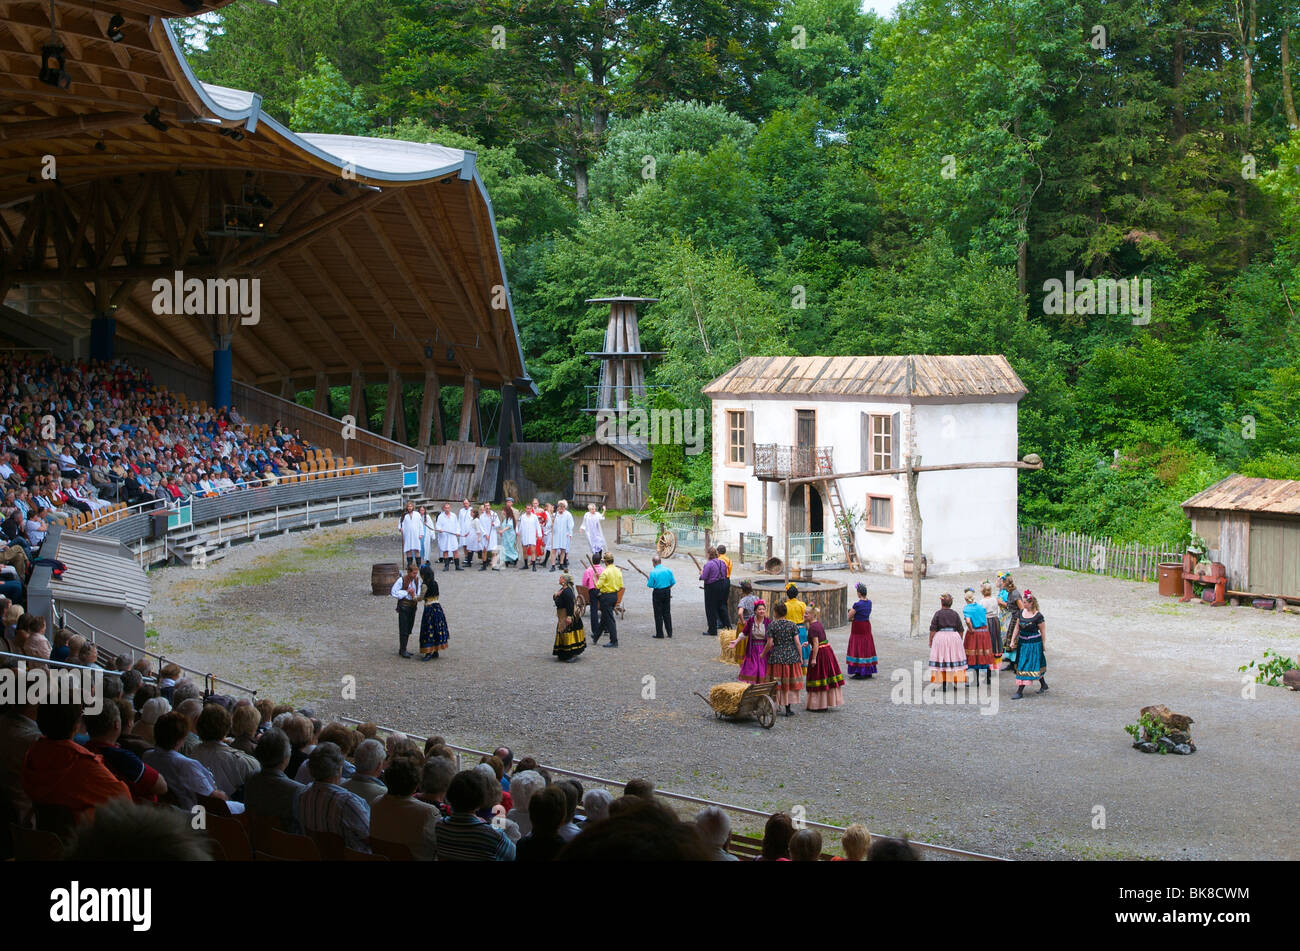 Open-air stage in Altusried, Allgaeu, Bavaria, Germany, Europe - Stock Image